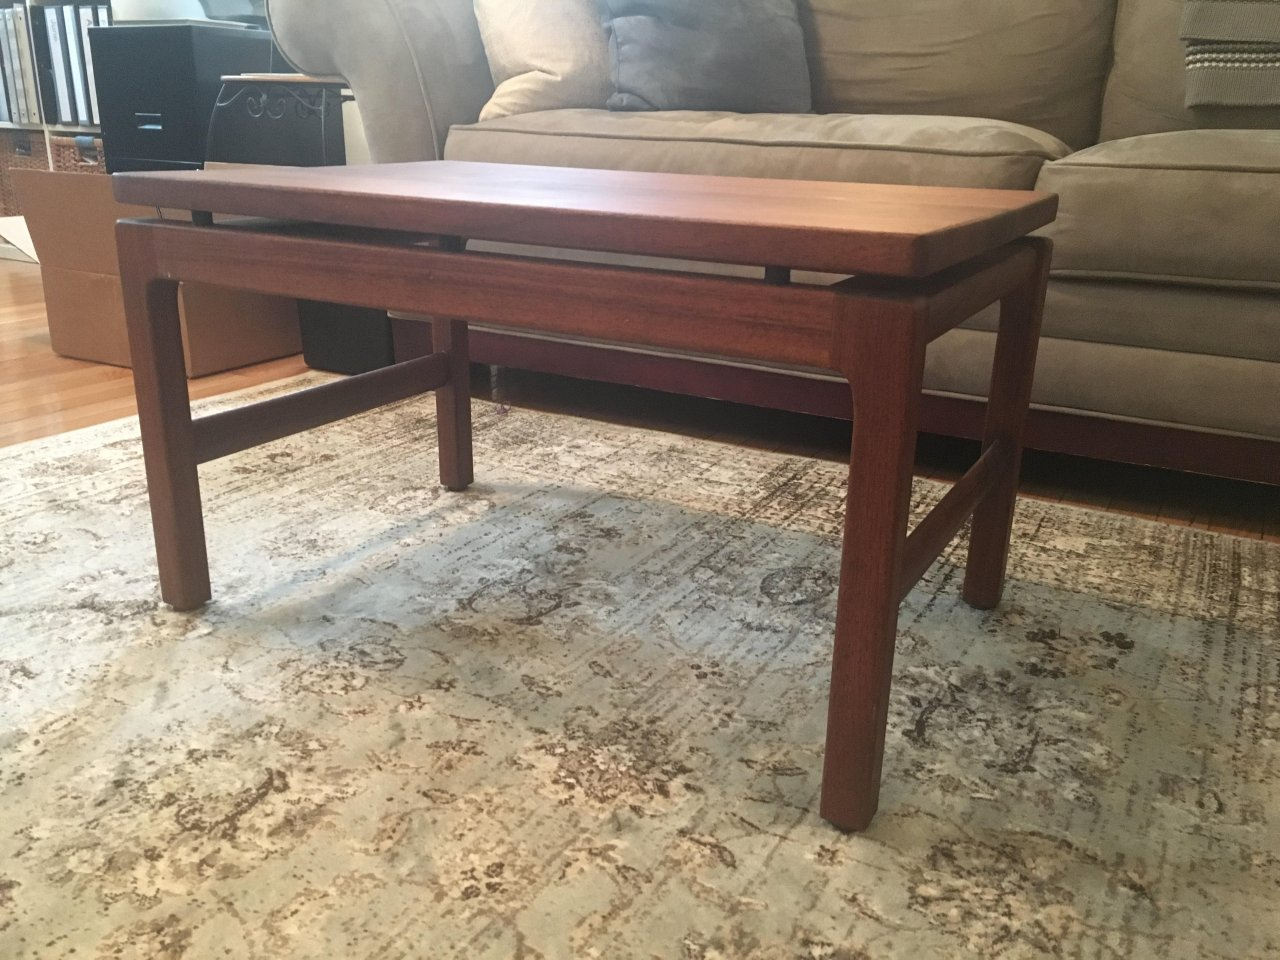 I Have A Small Coffee Table By W.H. Gunlocke, Its In Great  Shape...wondering If Anyone Knows The Time Period And What It Might Be  Valued At?